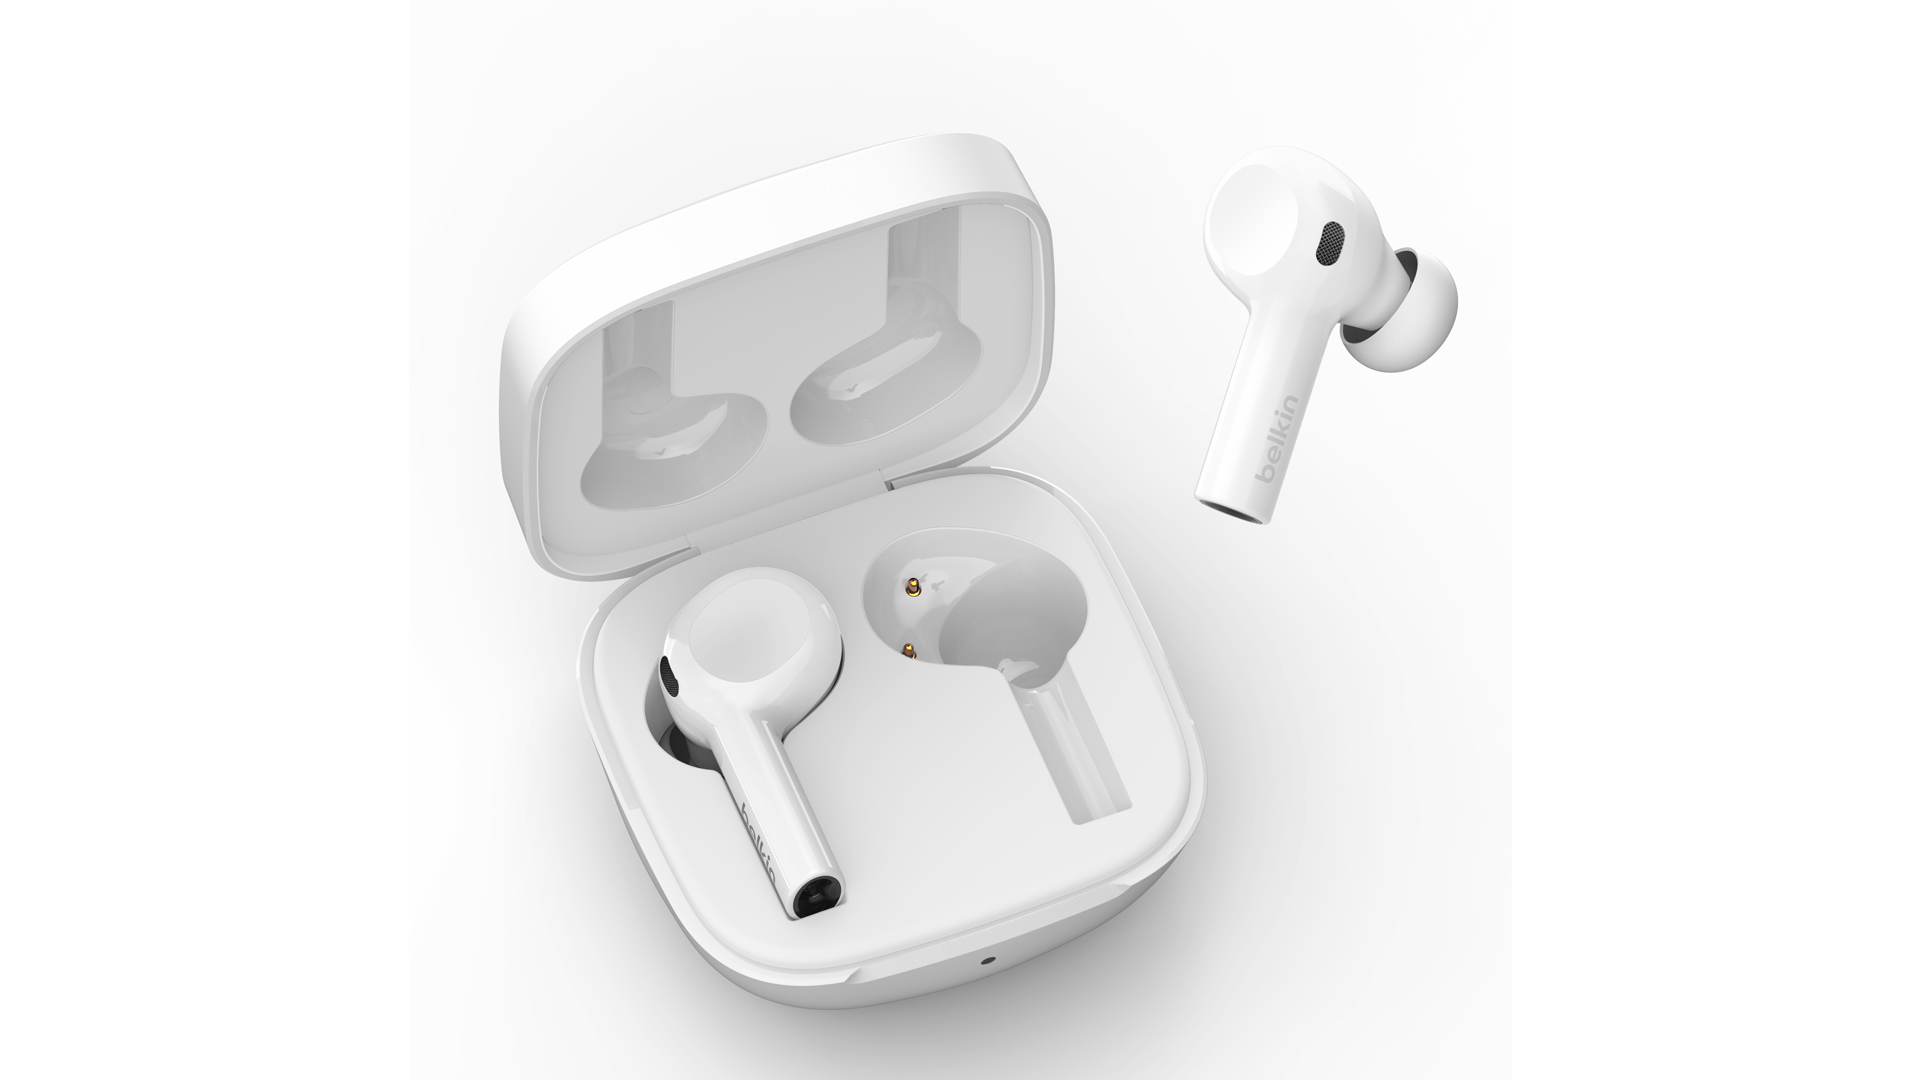 Belkin Unveils Wireless Earbuds using Apple's'Find My' Technology thumbnail